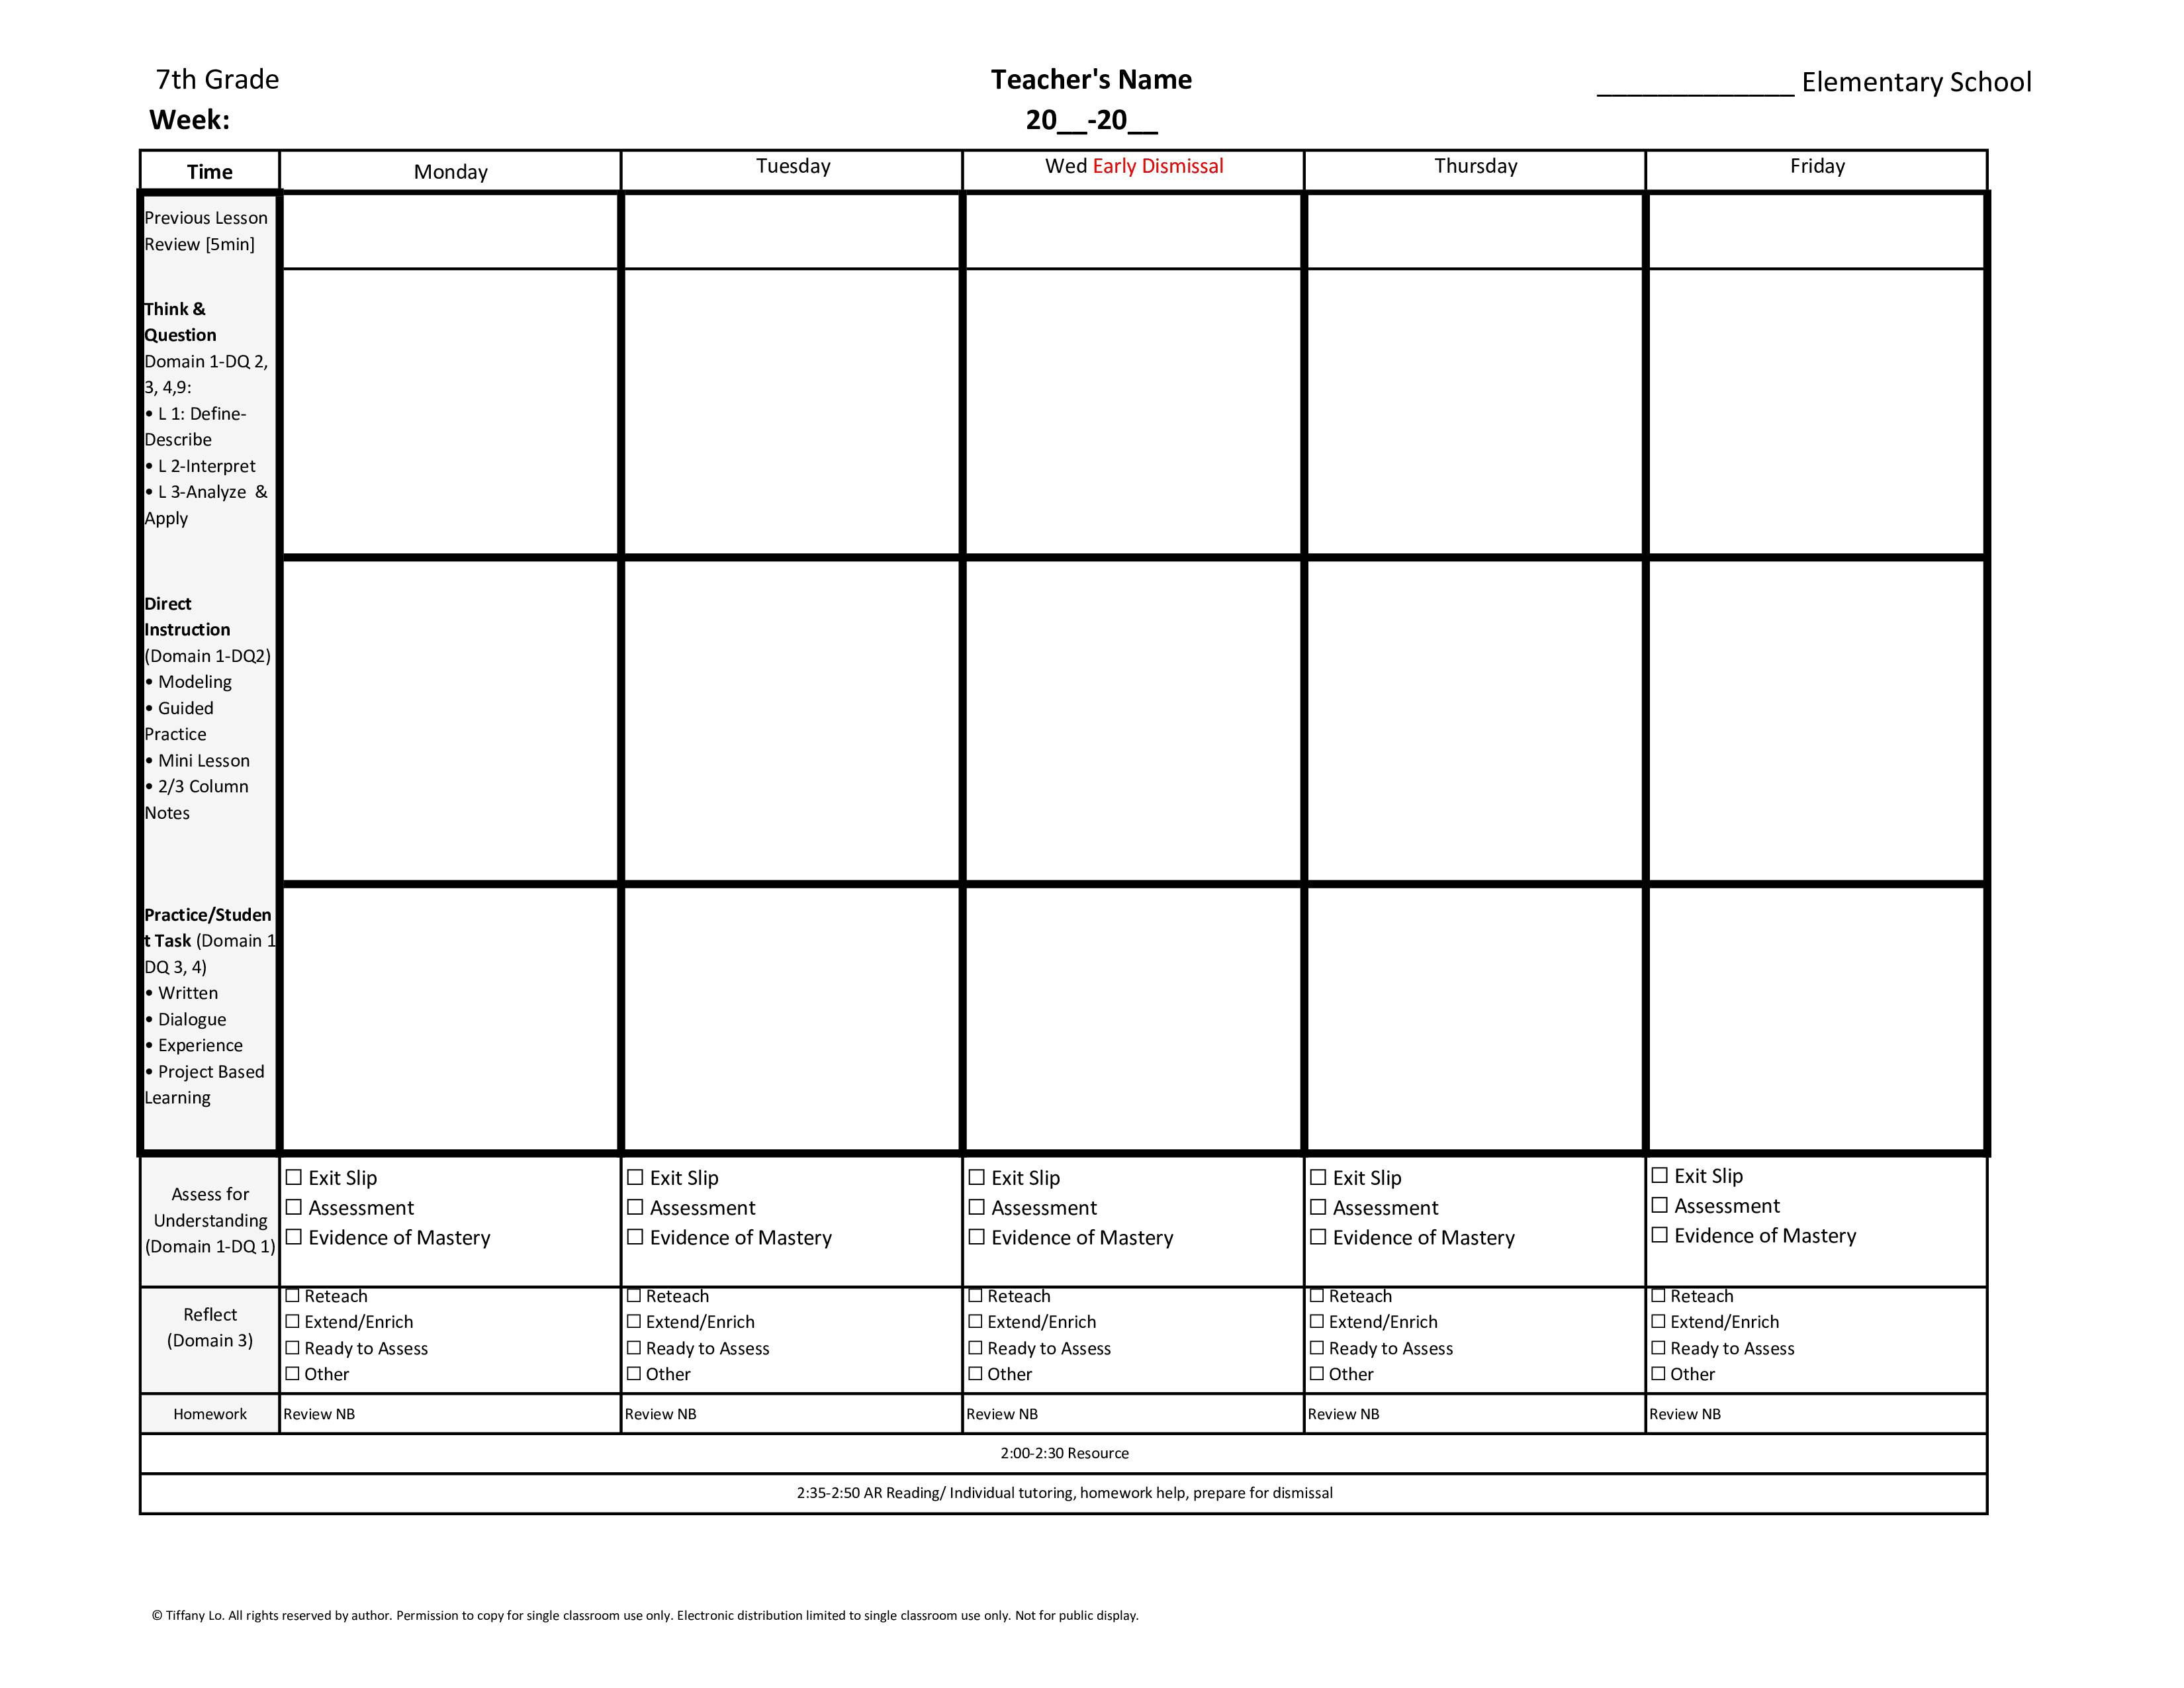 Th Seventh Grade Weekly Lesson Plan Template W Florida Standards - Lesson plan template florida